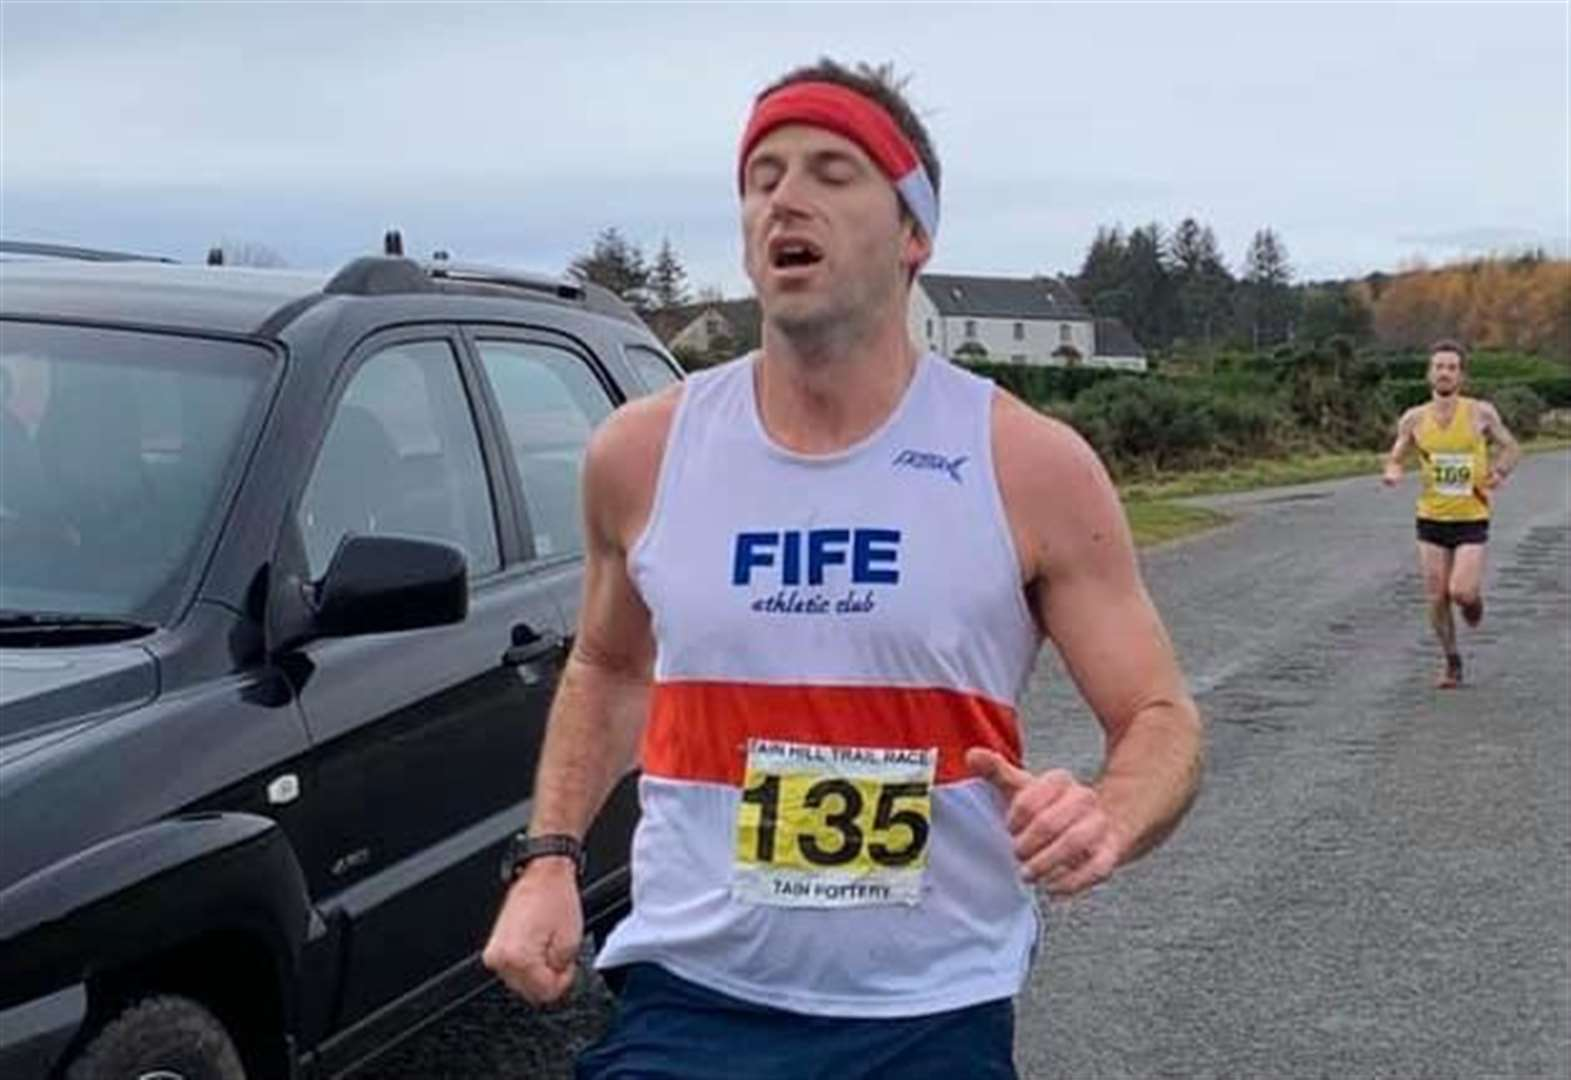 Scott and Morrison claim Tain Hill Trail Race wins